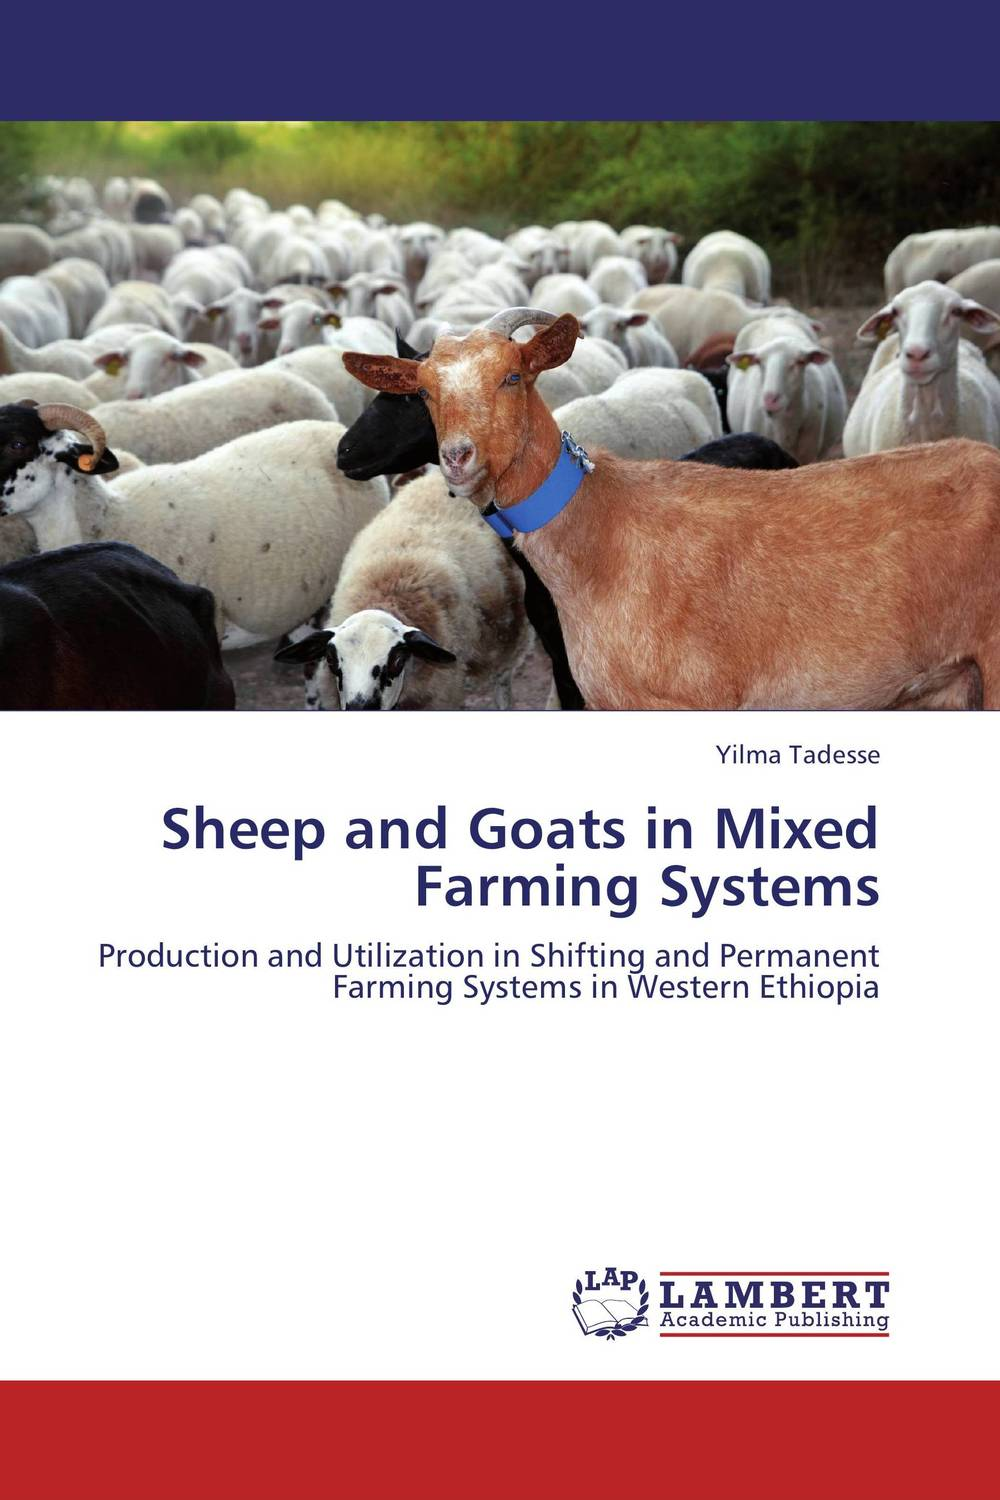 Sheep and Goats in Mixed Farming Systems